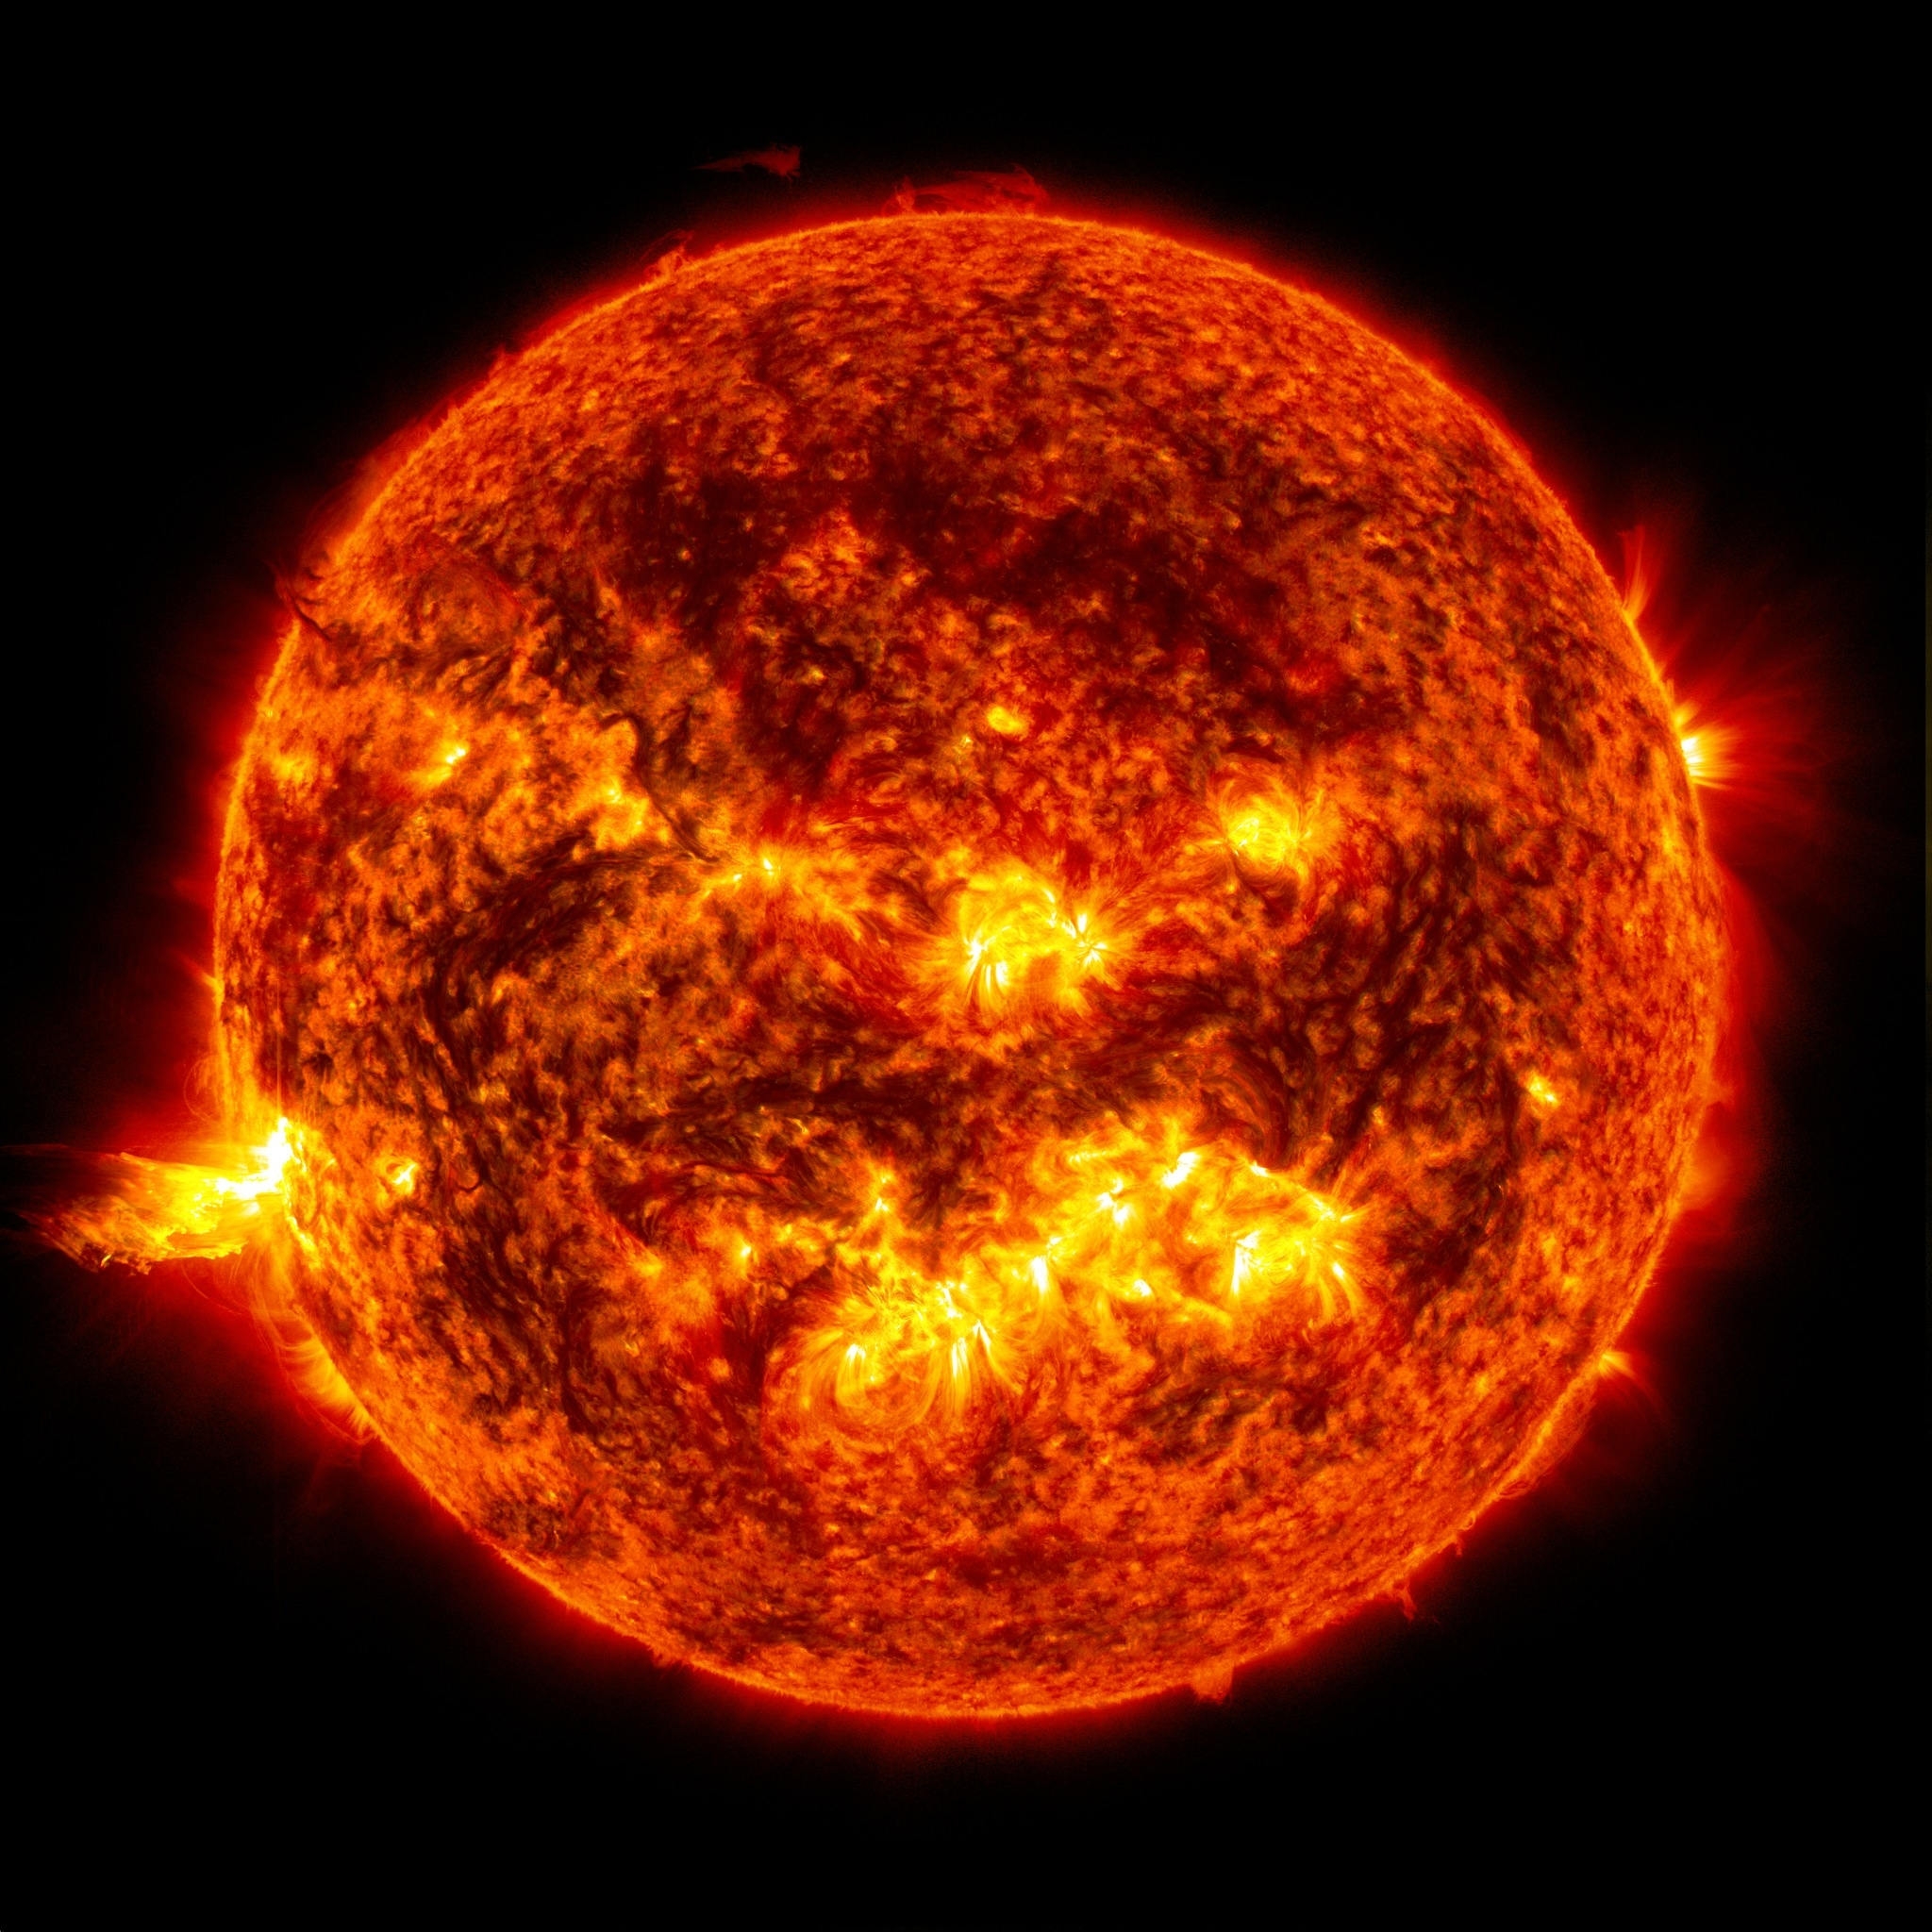 je_systemesolaire_eruption_solaire_.jpg